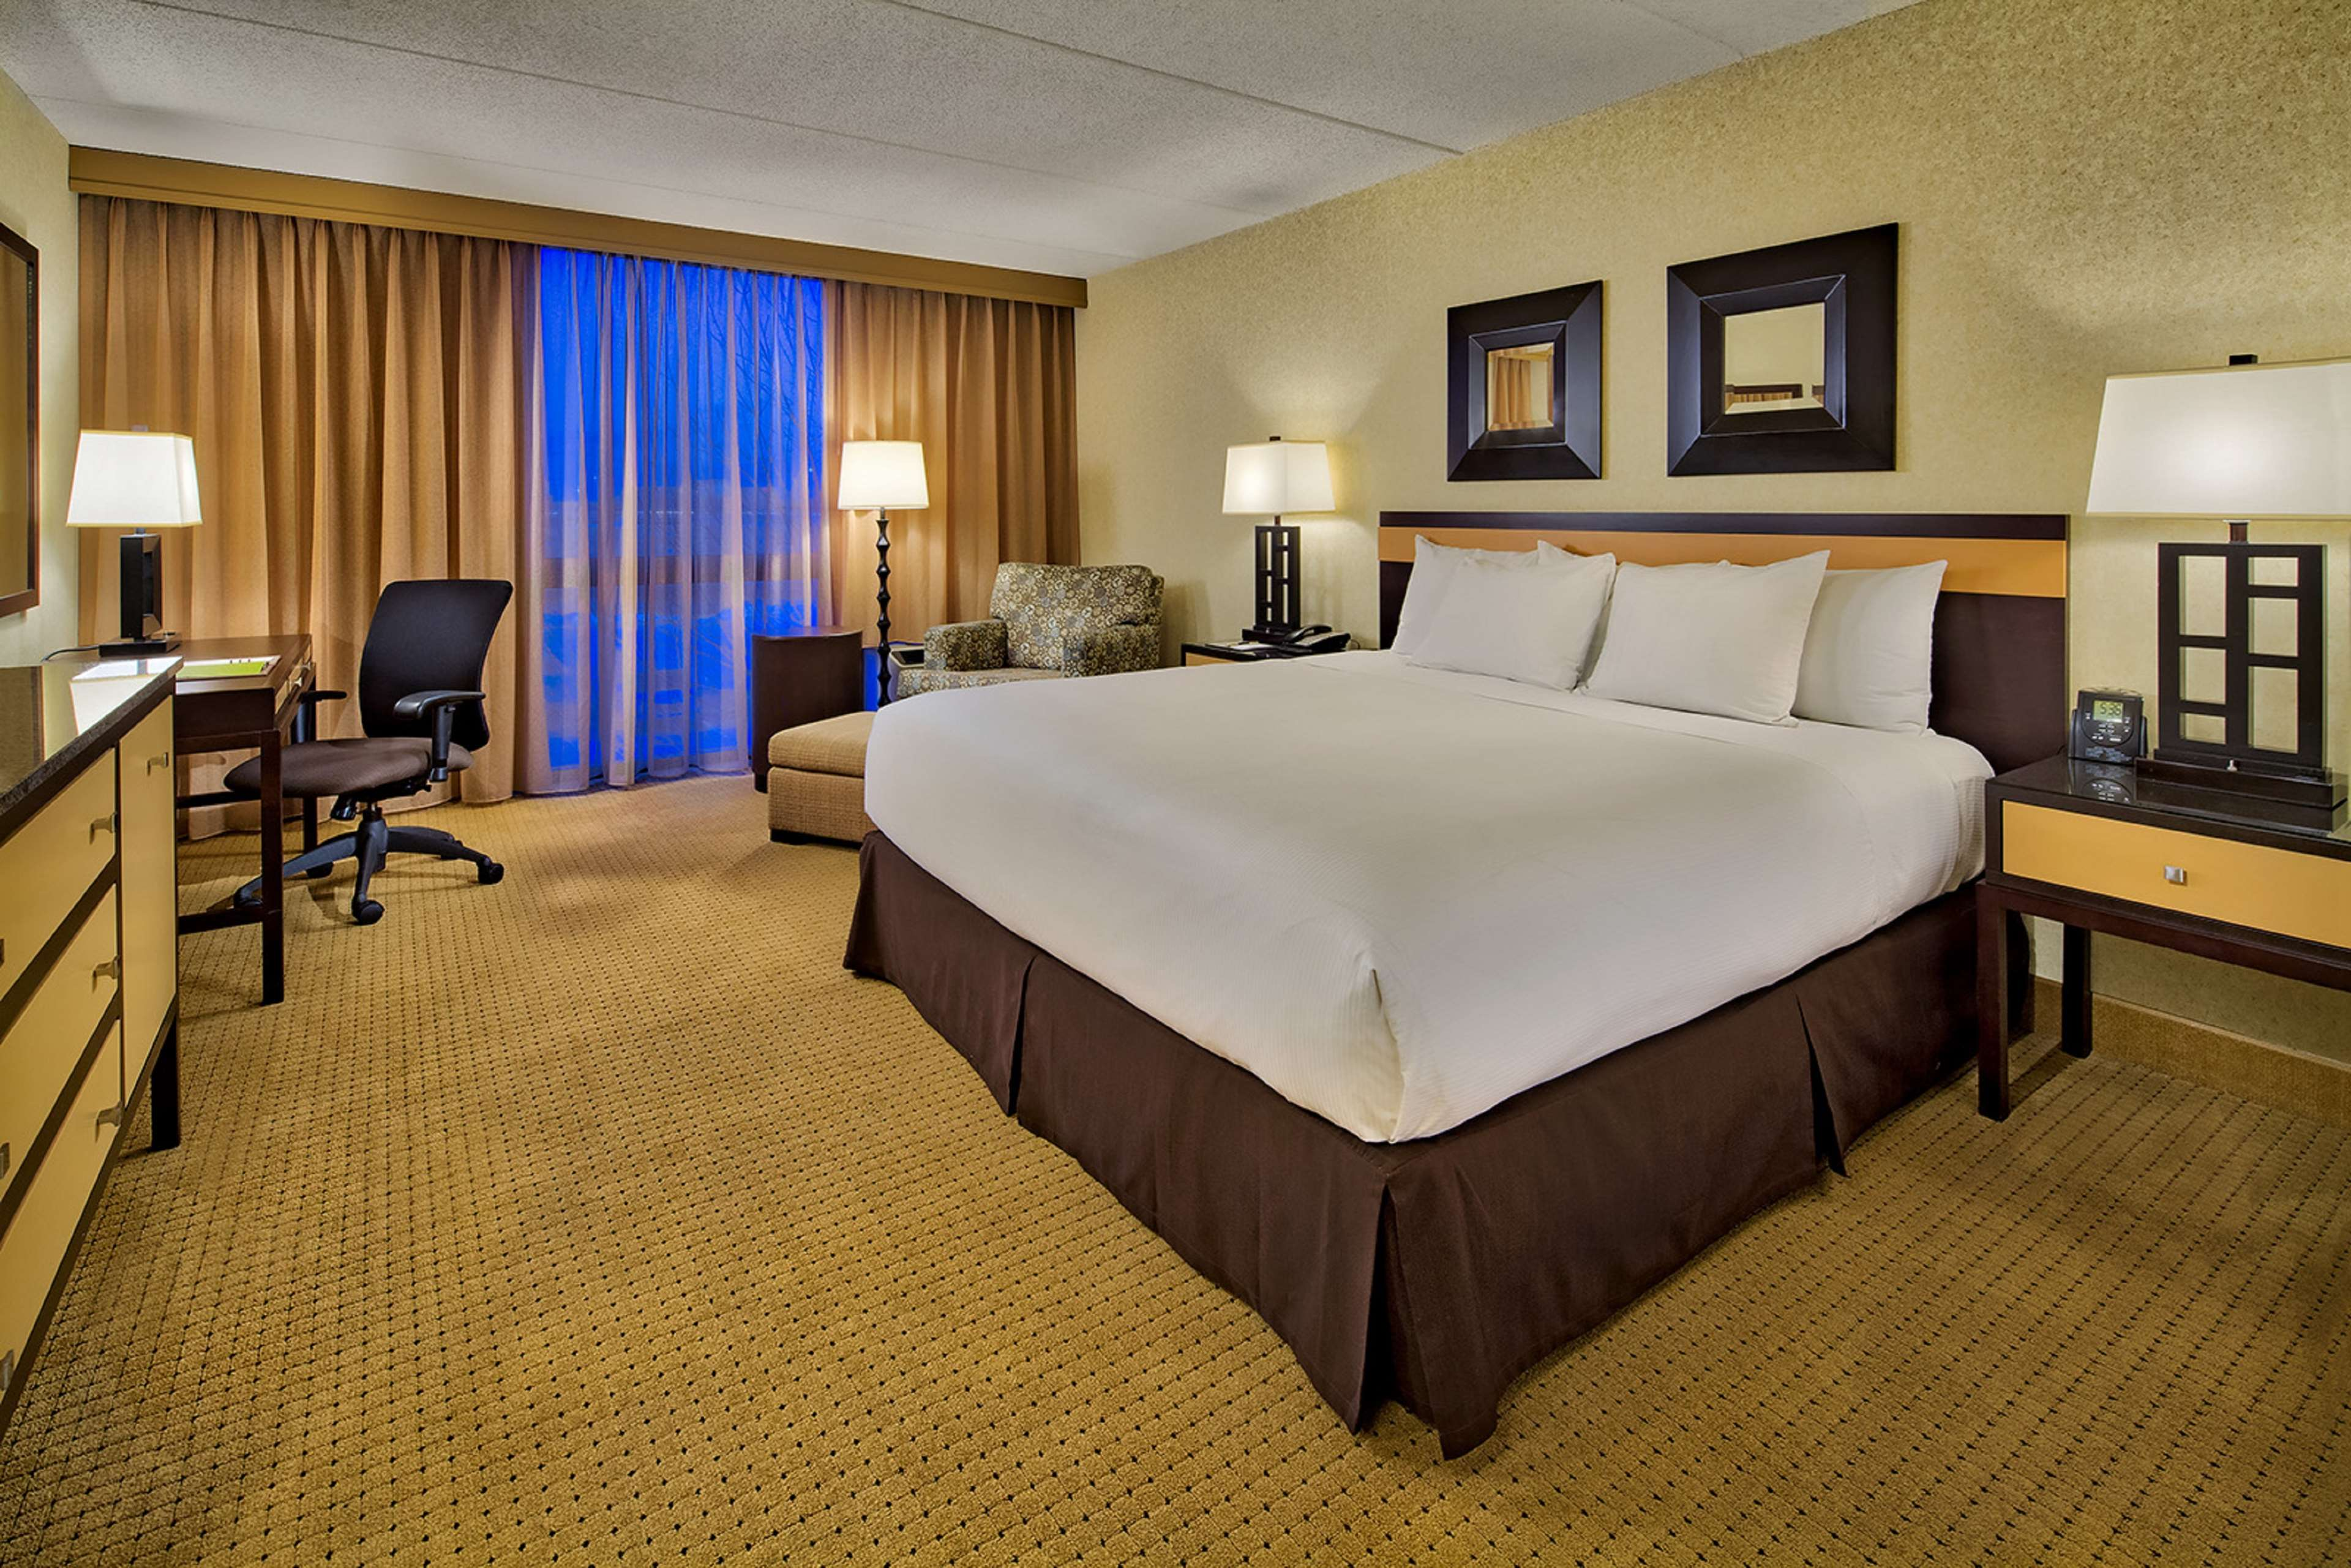 DoubleTree by Hilton Hotel Chicago - Arlington Heights image 4